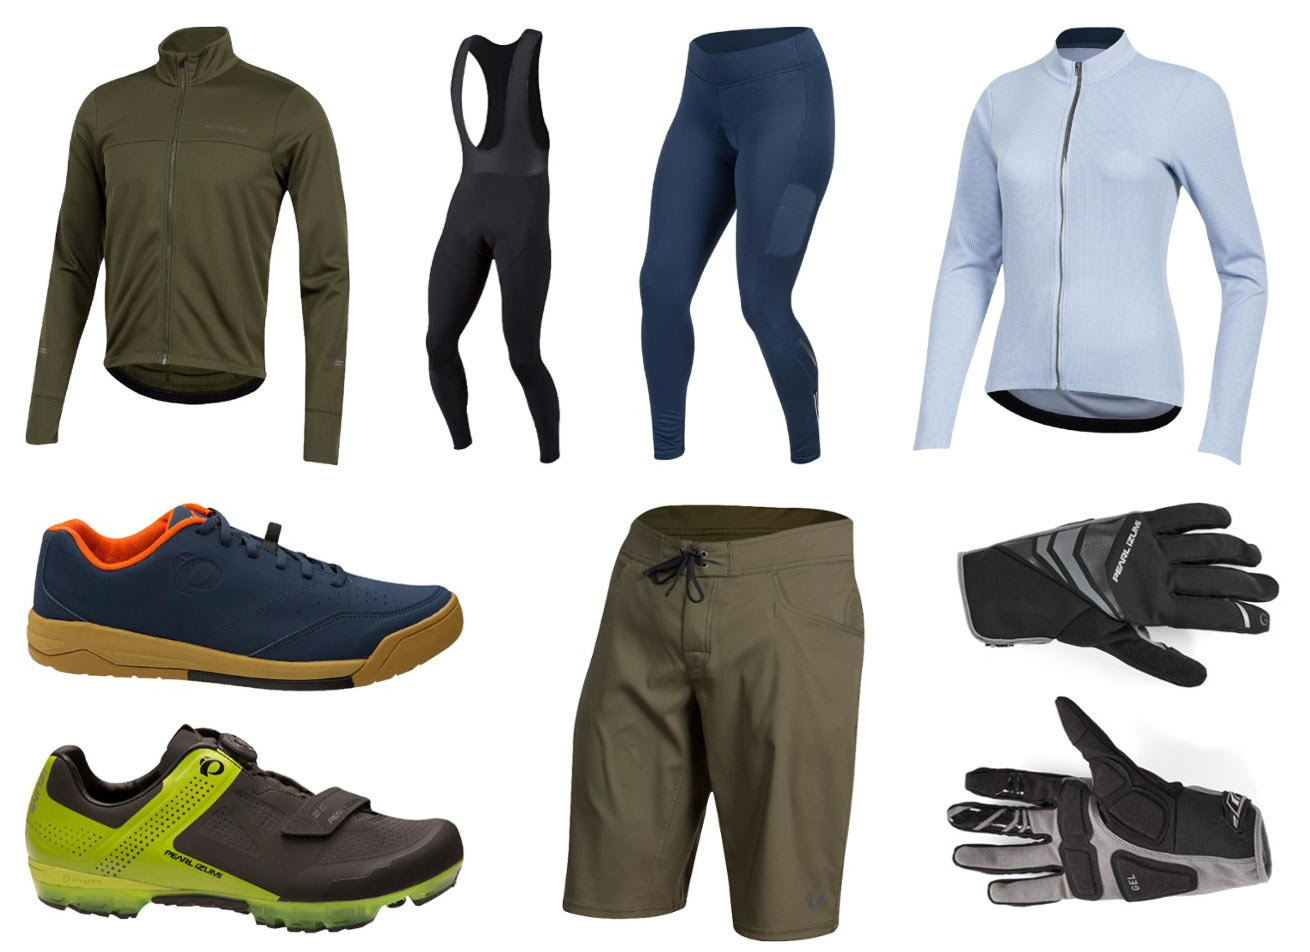 pearl izumi winter cycling clothing on sale